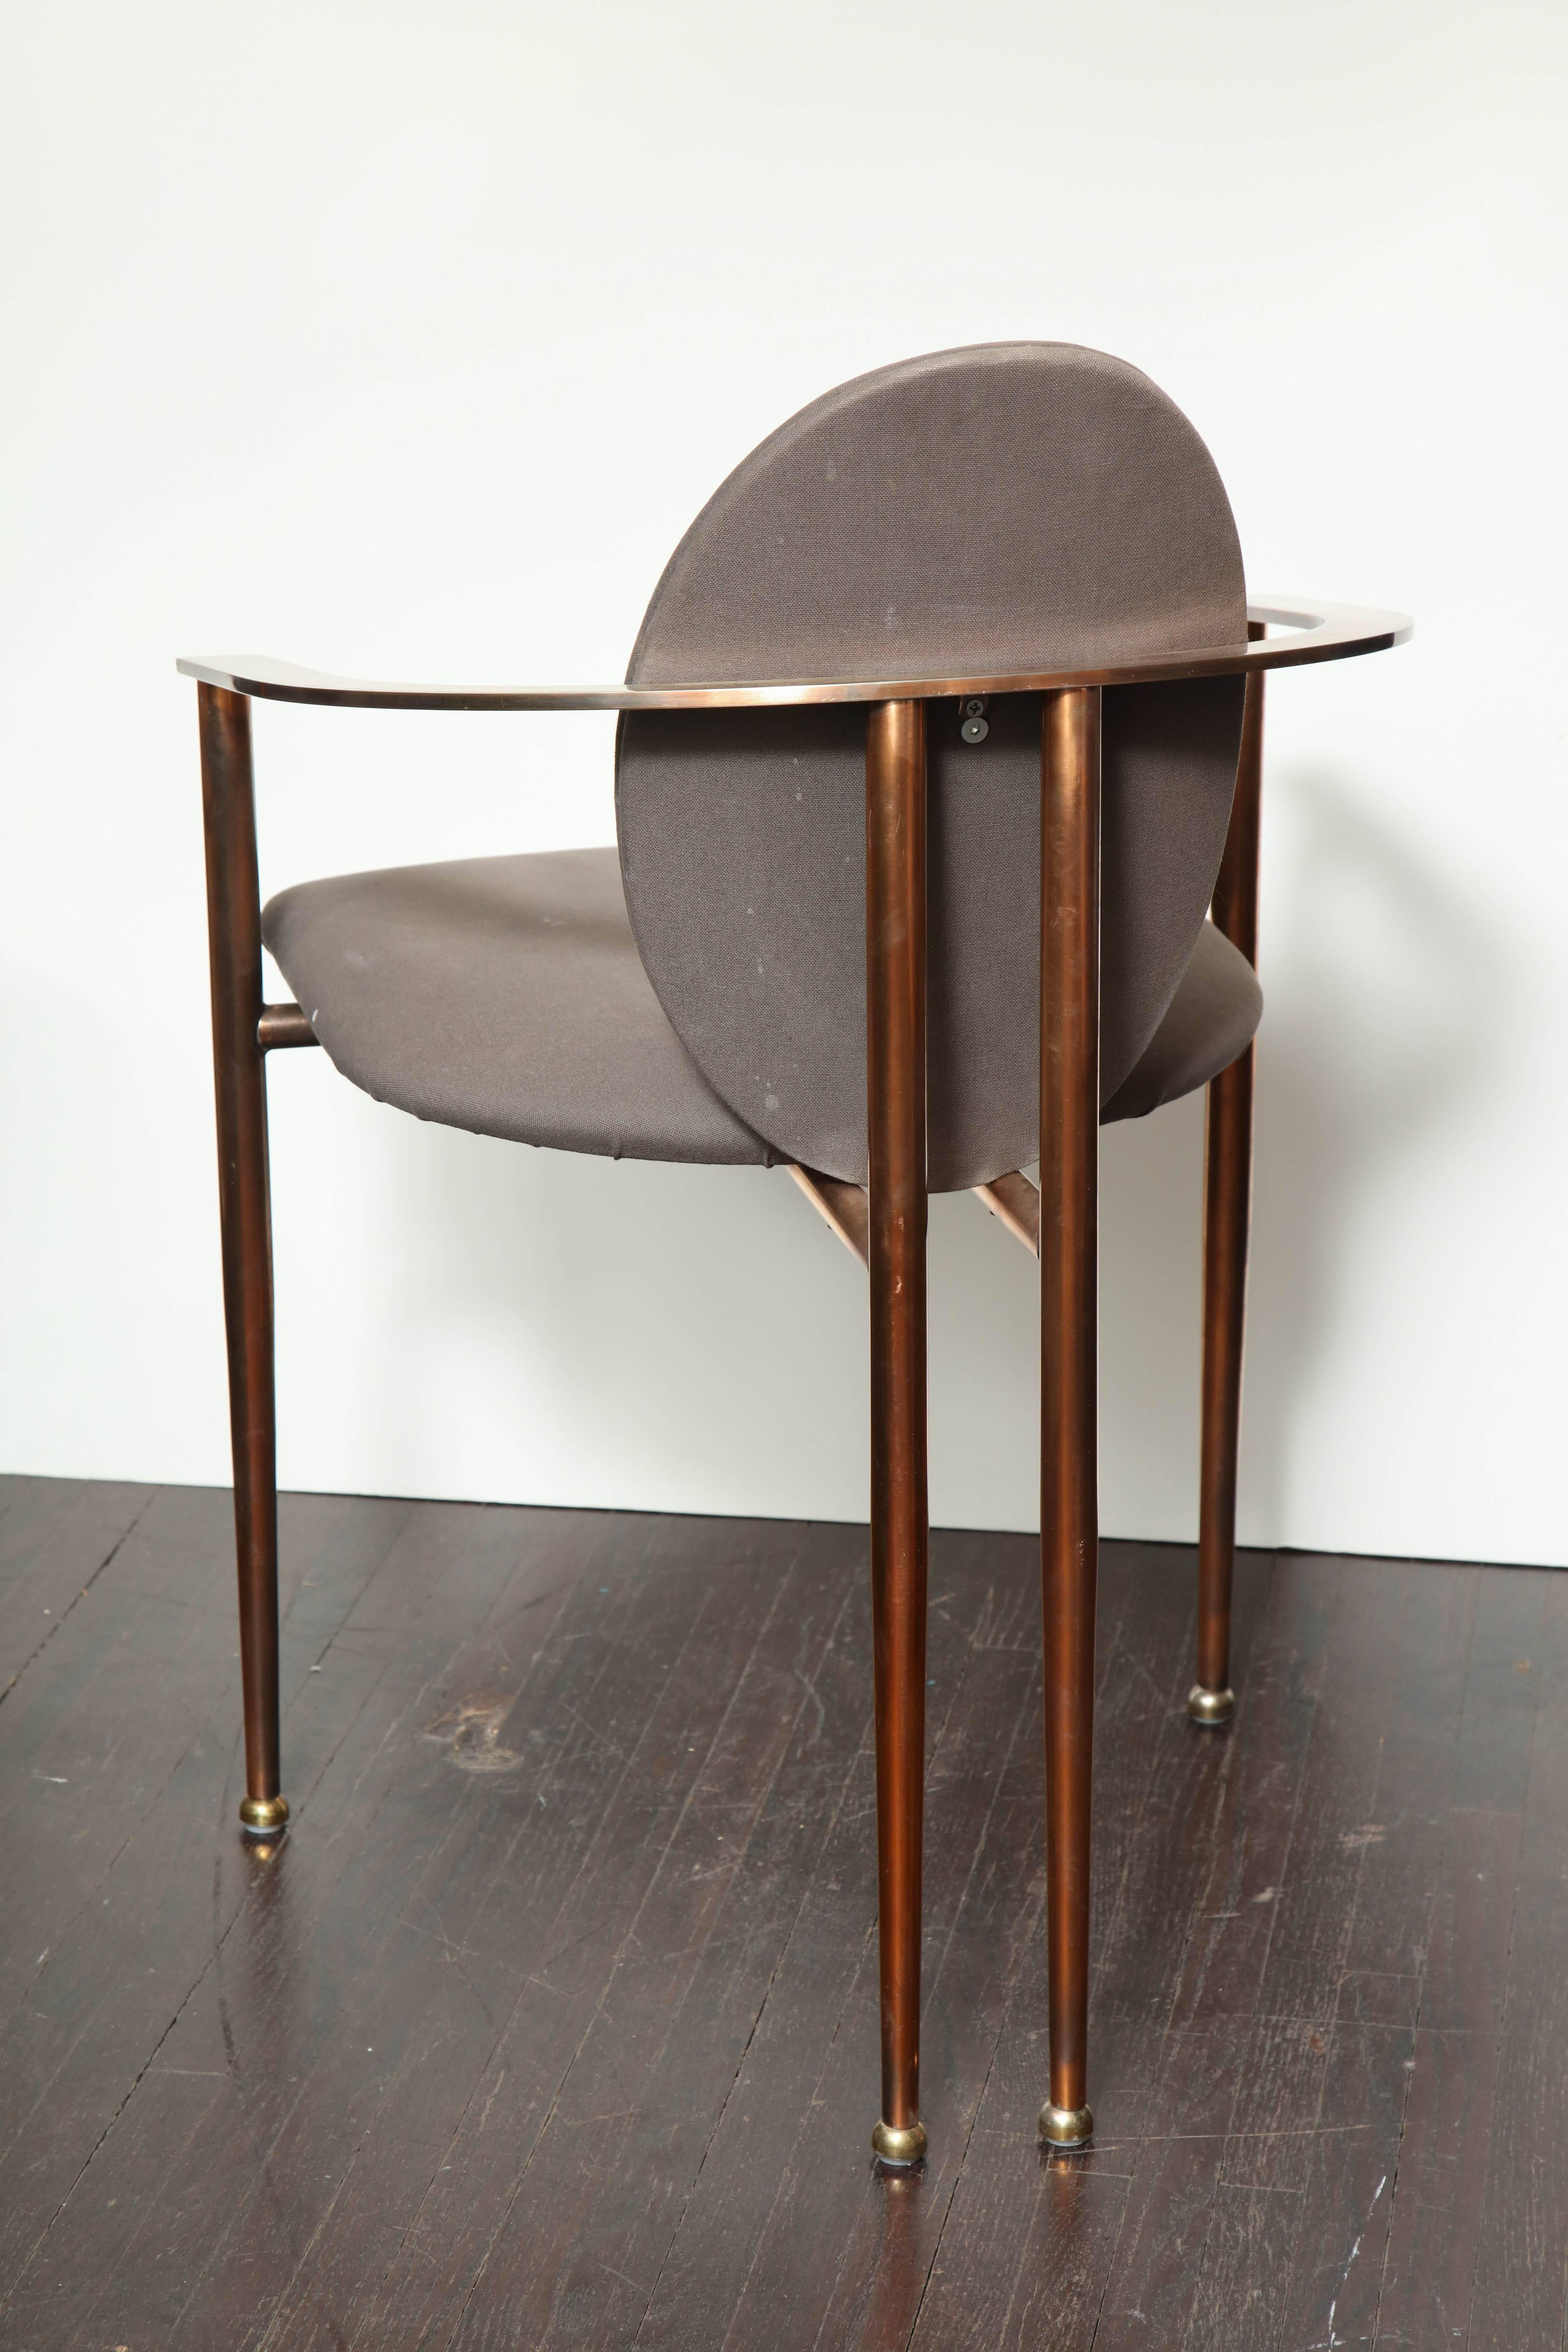 david rowland metal chair fishing not working set of four rose gold-plated chairs, 1970s for sale at 1stdibs